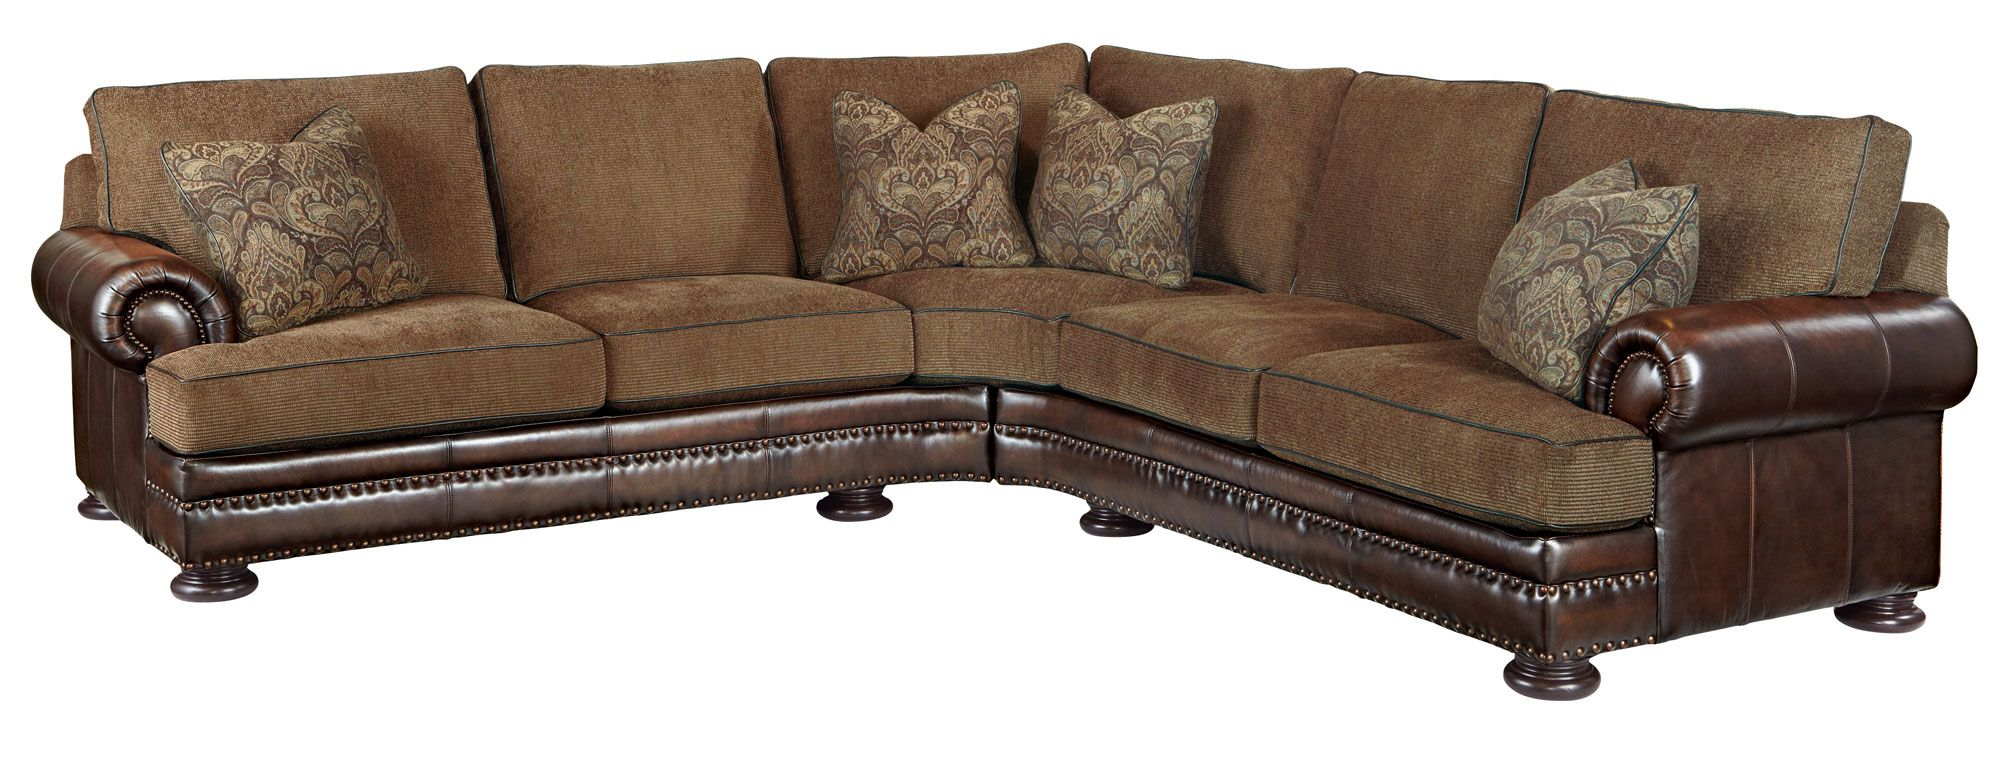 Superbe Bernhardt | Foster Fabric/Leather Sectional Group (5192LCO, 5191LCO)